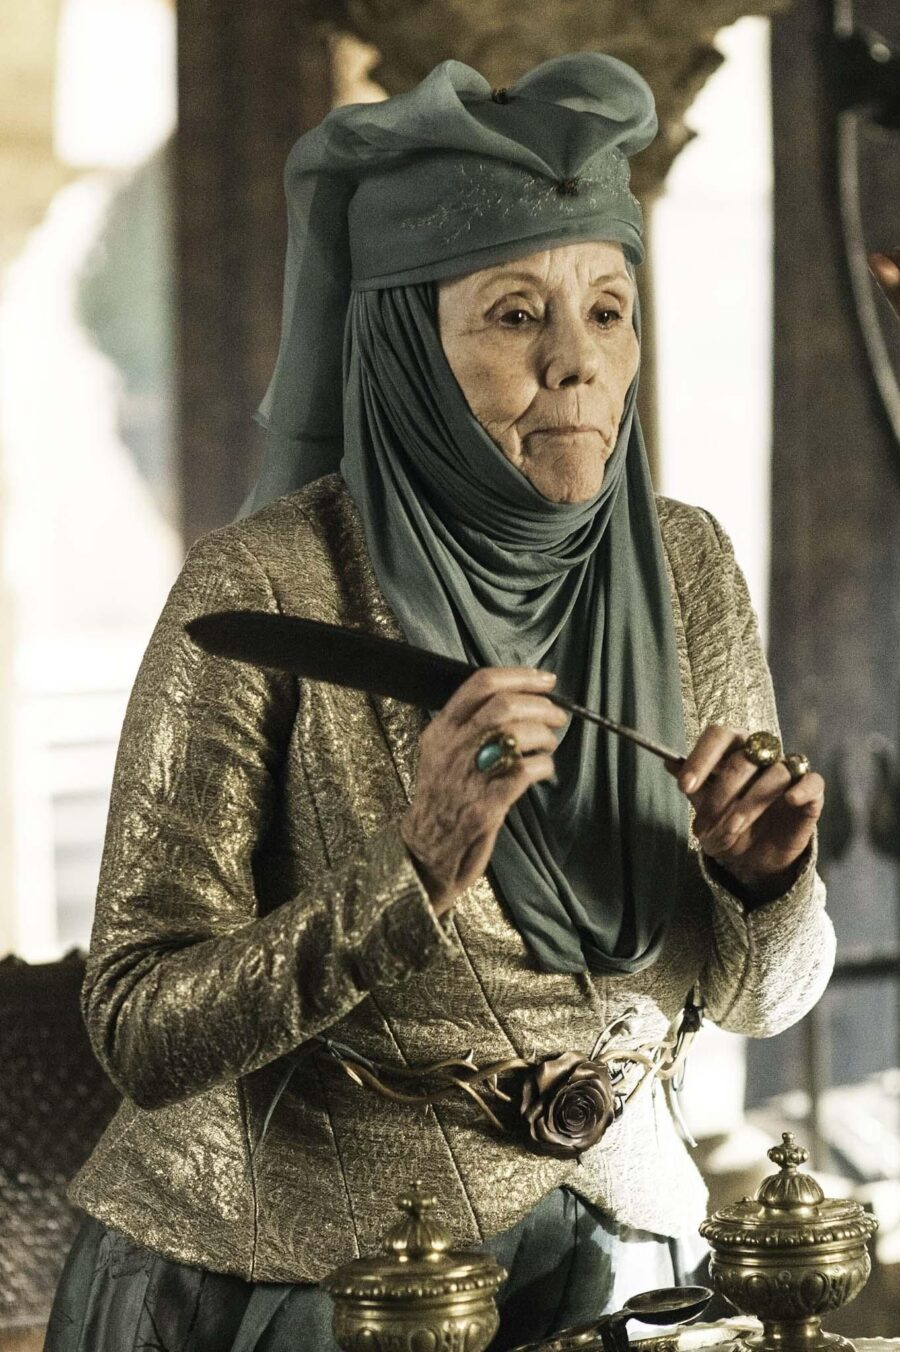 Diana Rigg on Game of Thrones